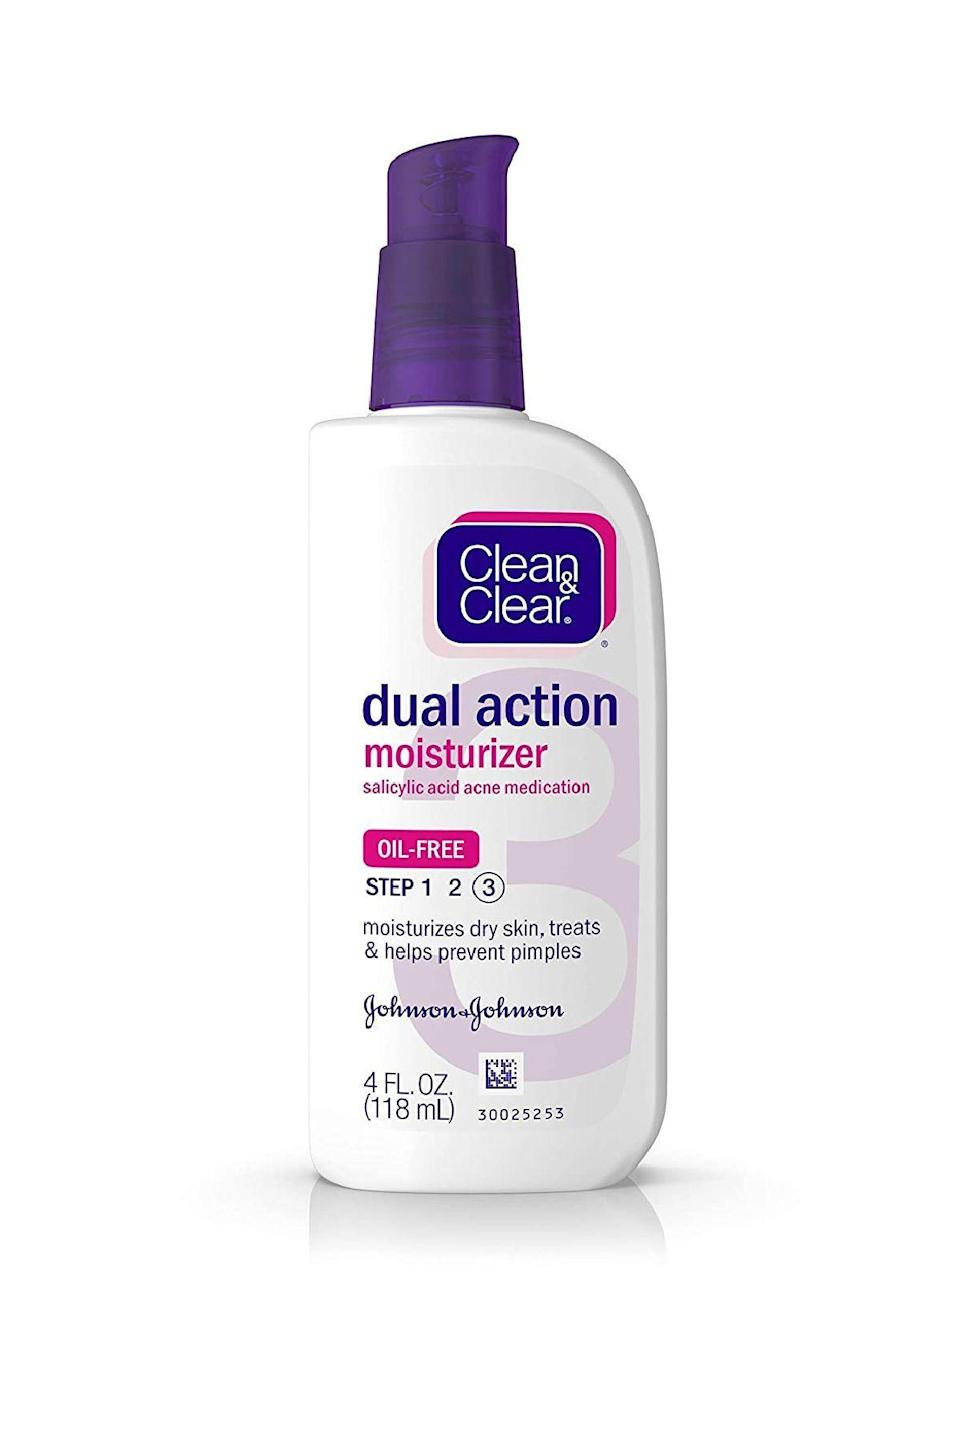 """<p><strong>Clean & Clear</strong></p><p>amazon.com</p><p><strong>$4.97</strong></p><p><a href=""""https://www.amazon.com/dp/B001E96LVS?tag=syn-yahoo-20&ascsubtag=%5Bartid%7C10058.g.34399769%5Bsrc%7Cyahoo-us"""" rel=""""nofollow noopener"""" target=""""_blank"""" data-ylk=""""slk:SHOP IT"""" class=""""link rapid-noclick-resp"""">SHOP IT</a></p><p>One part daily moisturizer and one part blemish-blaster, this affordable option makes use of a .5% salicylic acid blend to blunt current breakouts and discourage ones in the future.</p>"""